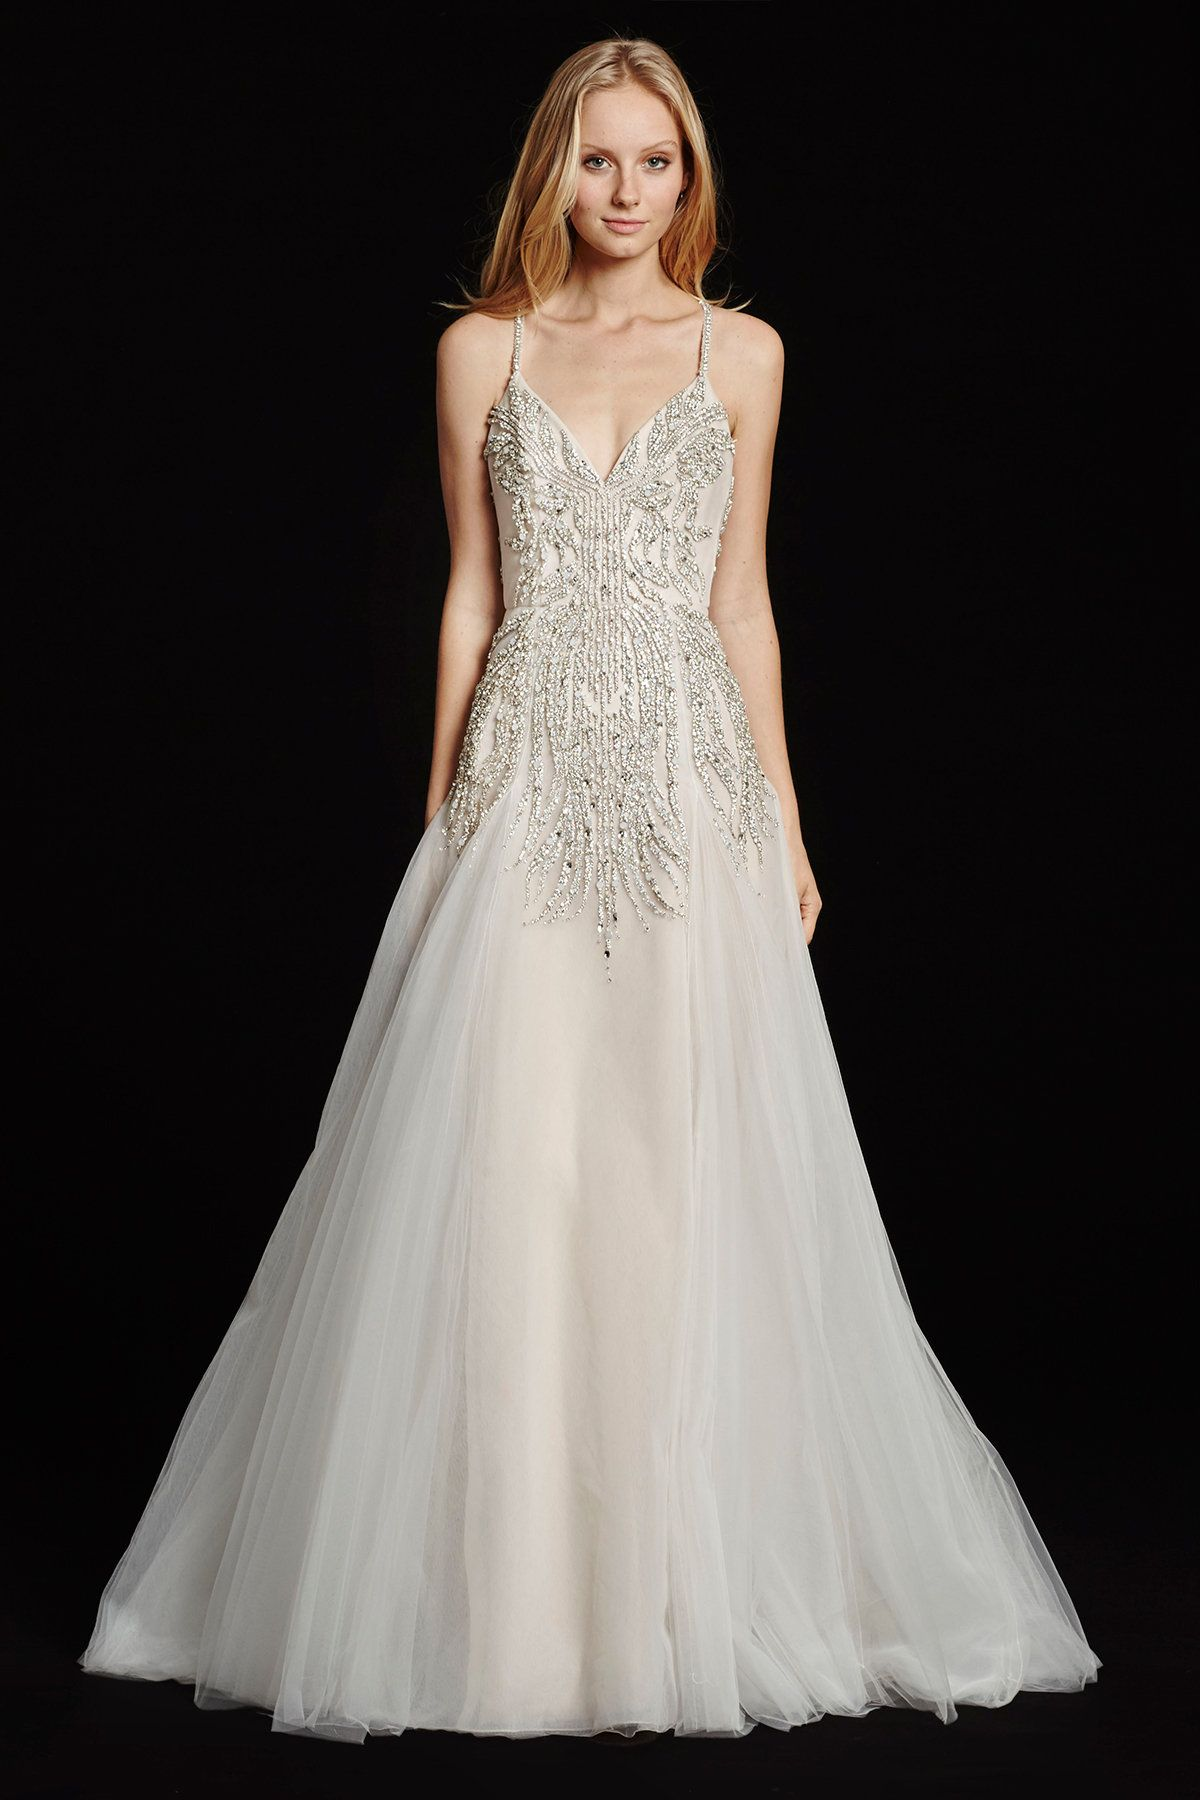 Dresses to wear at a wedding  Style  Comet Alternate View  Wedding  Itus so me  Pinterest